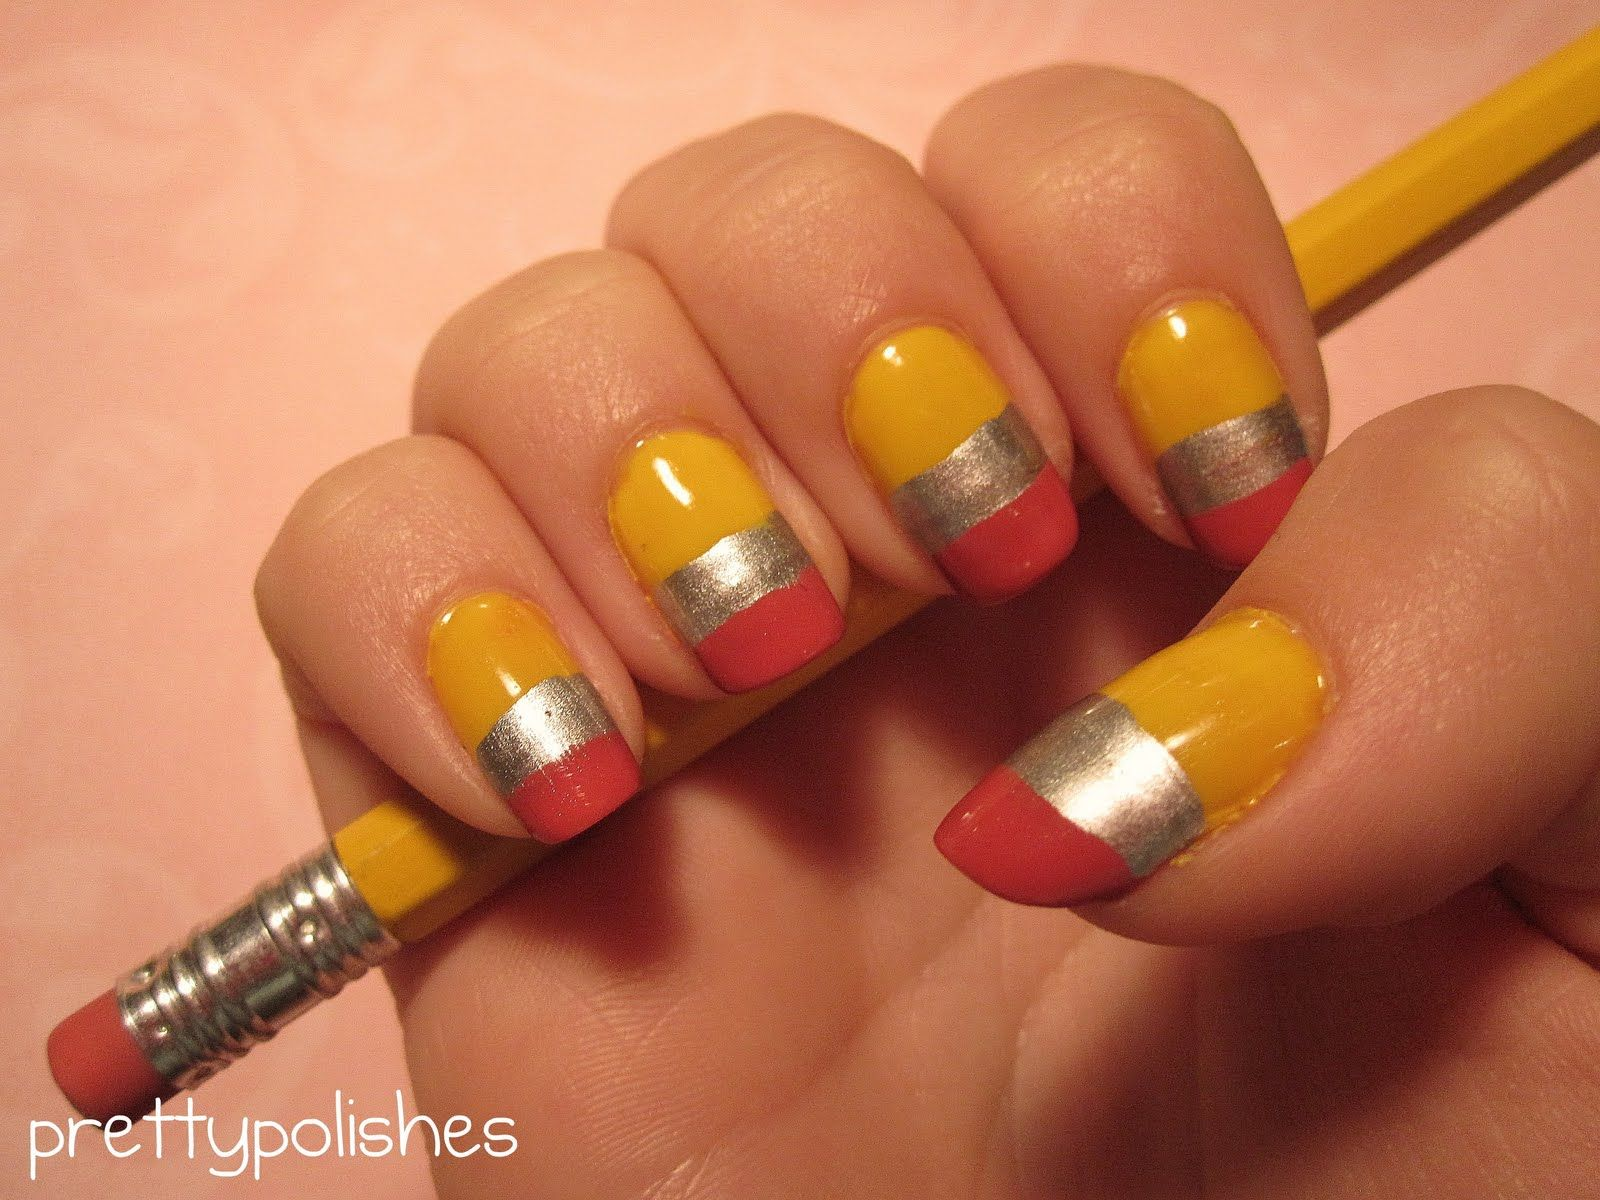 prettypolishes: Back-To-School Pencil Inspired Nail Art | Hair ...